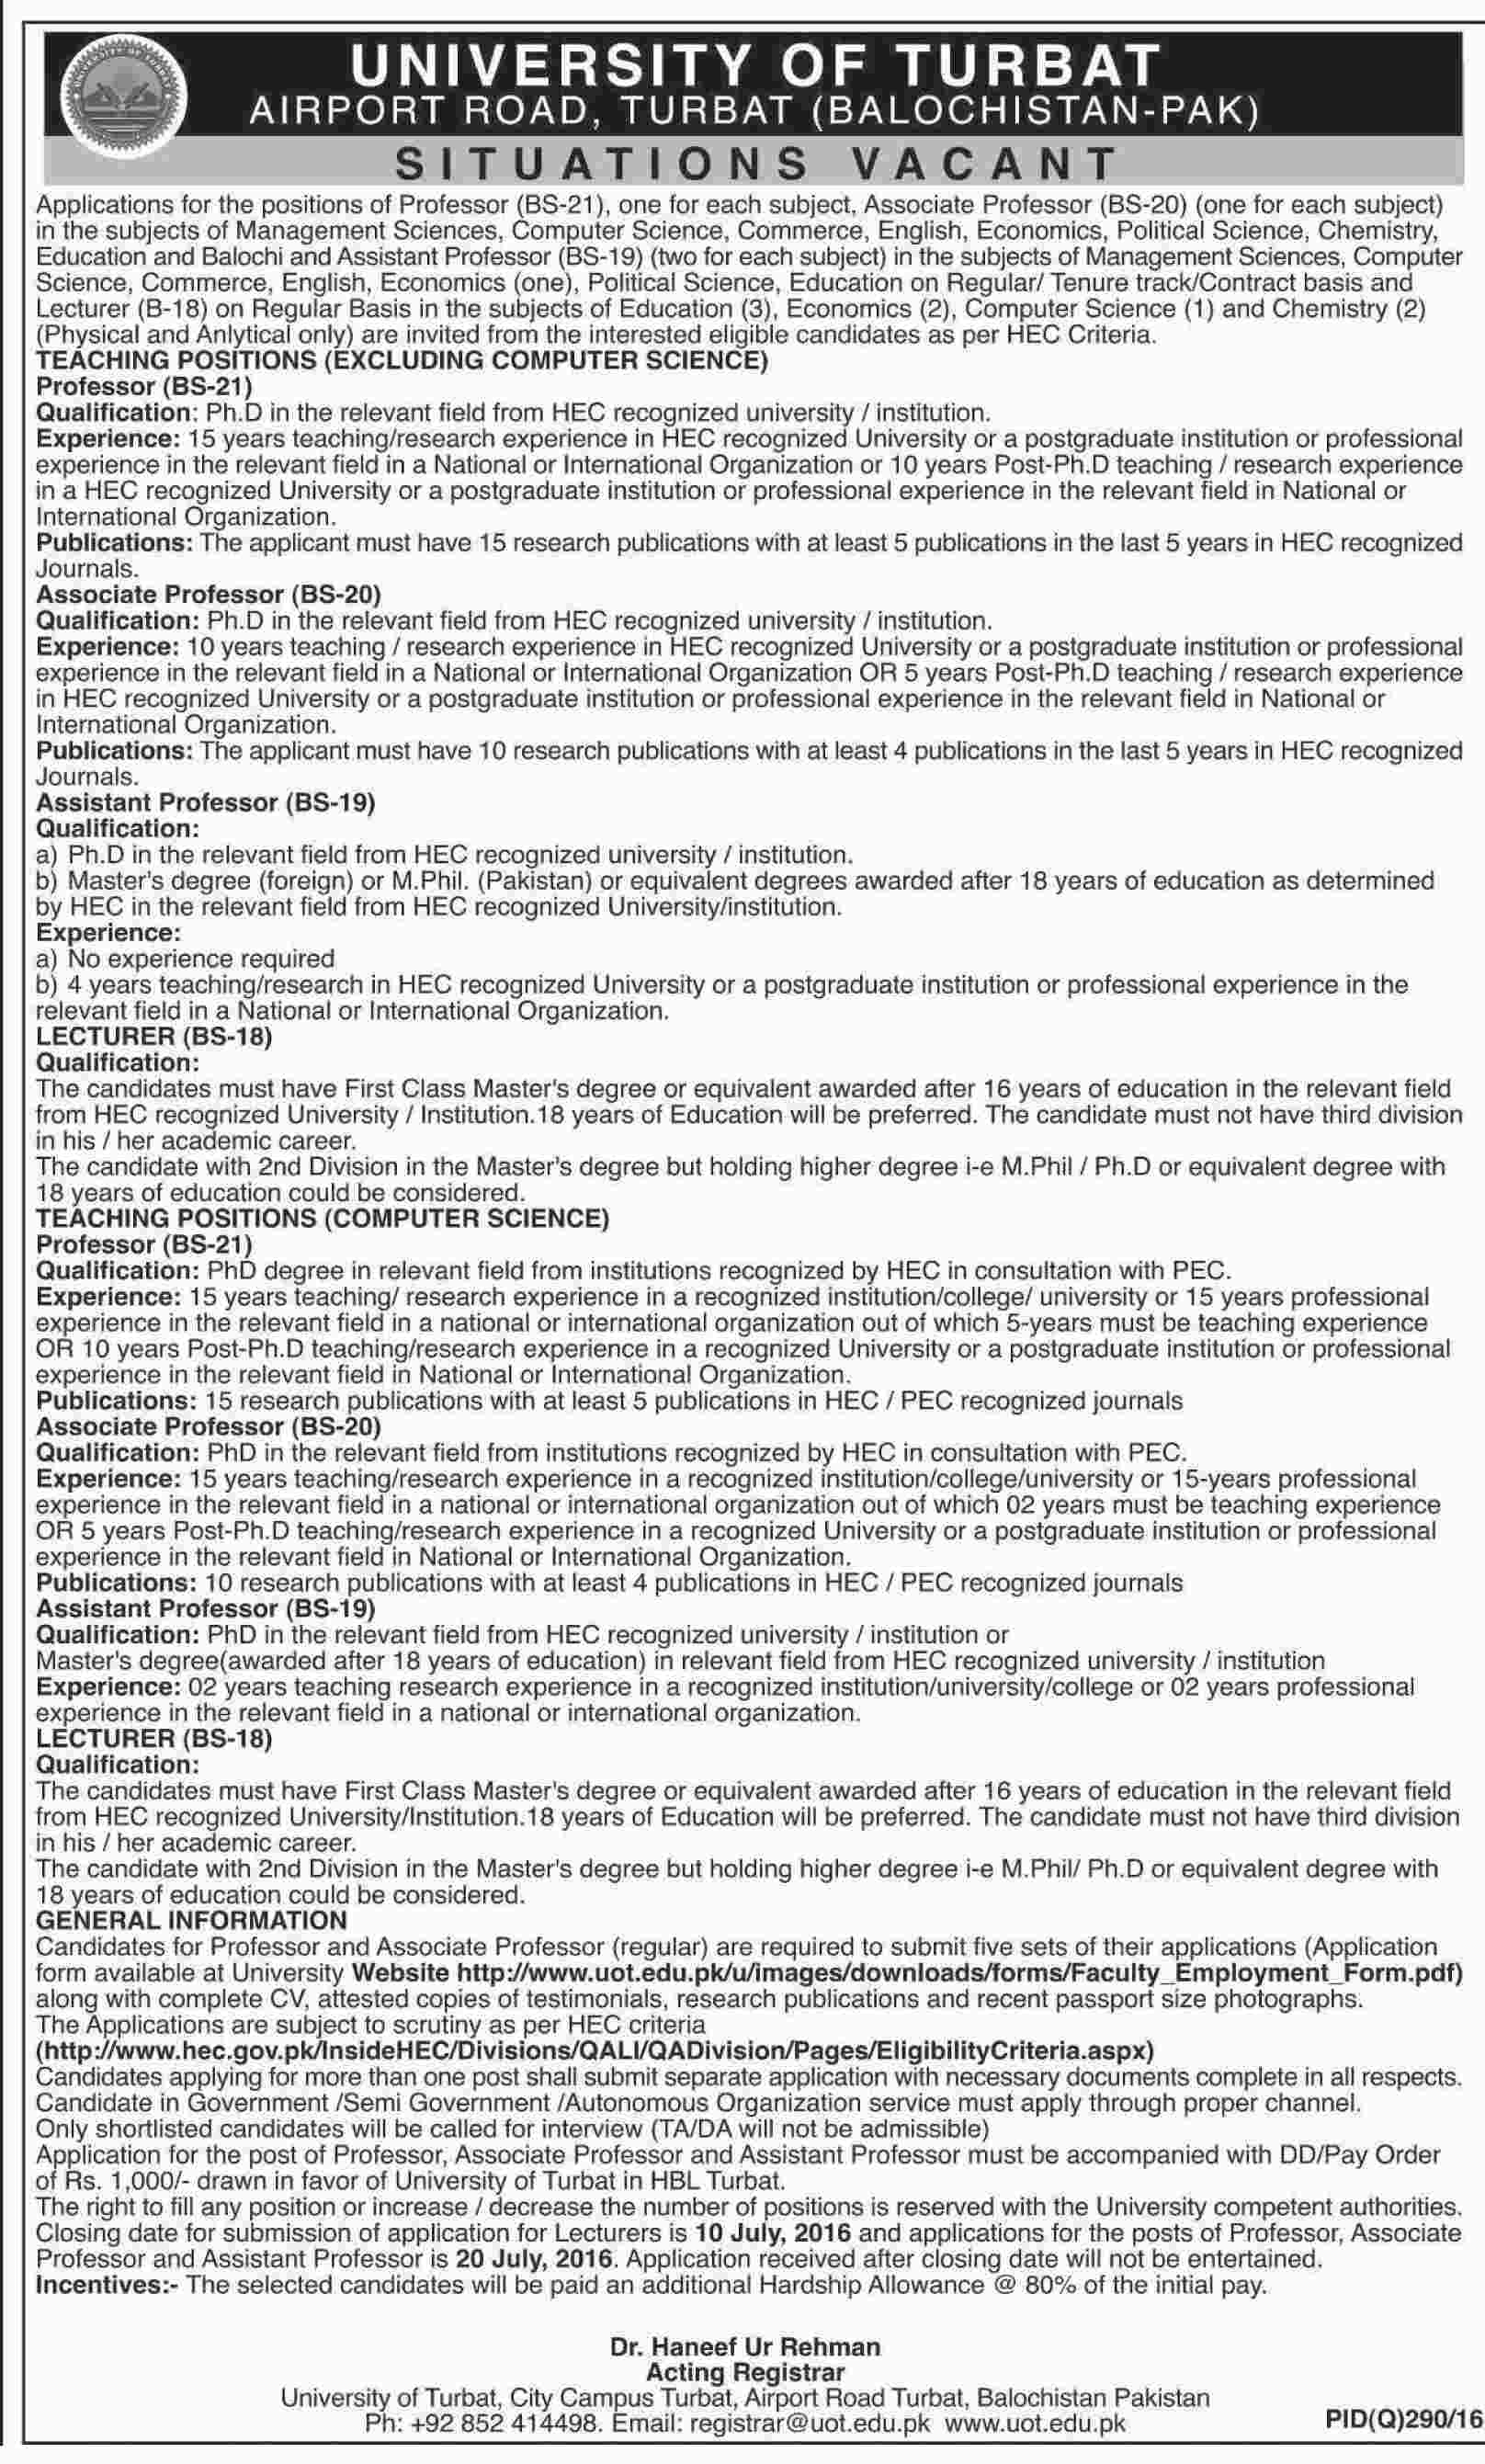 University of Turbat Jobs